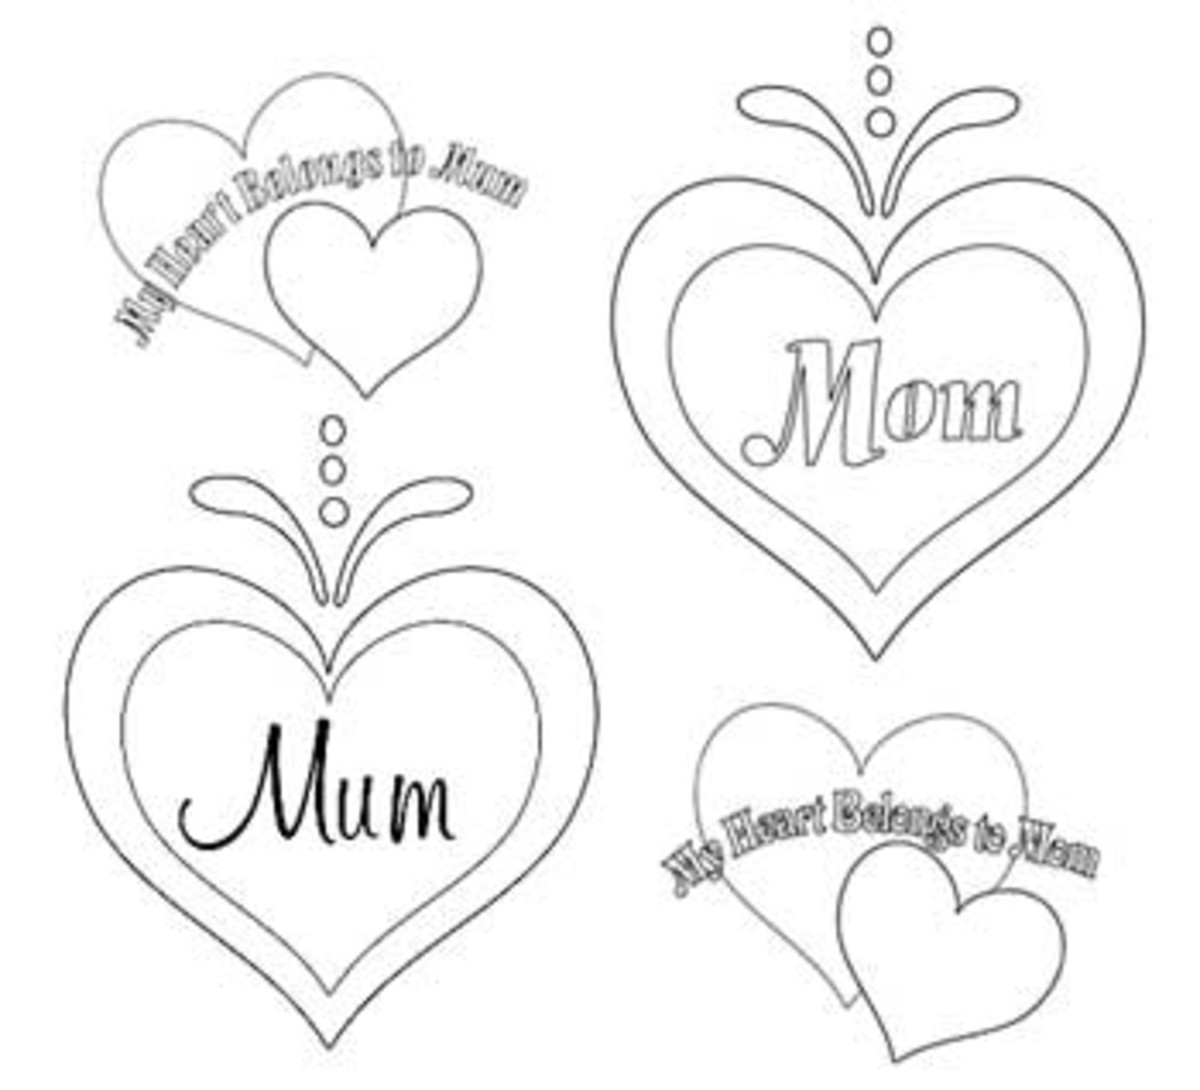 Mothers Day Coloring Pages, Hearts